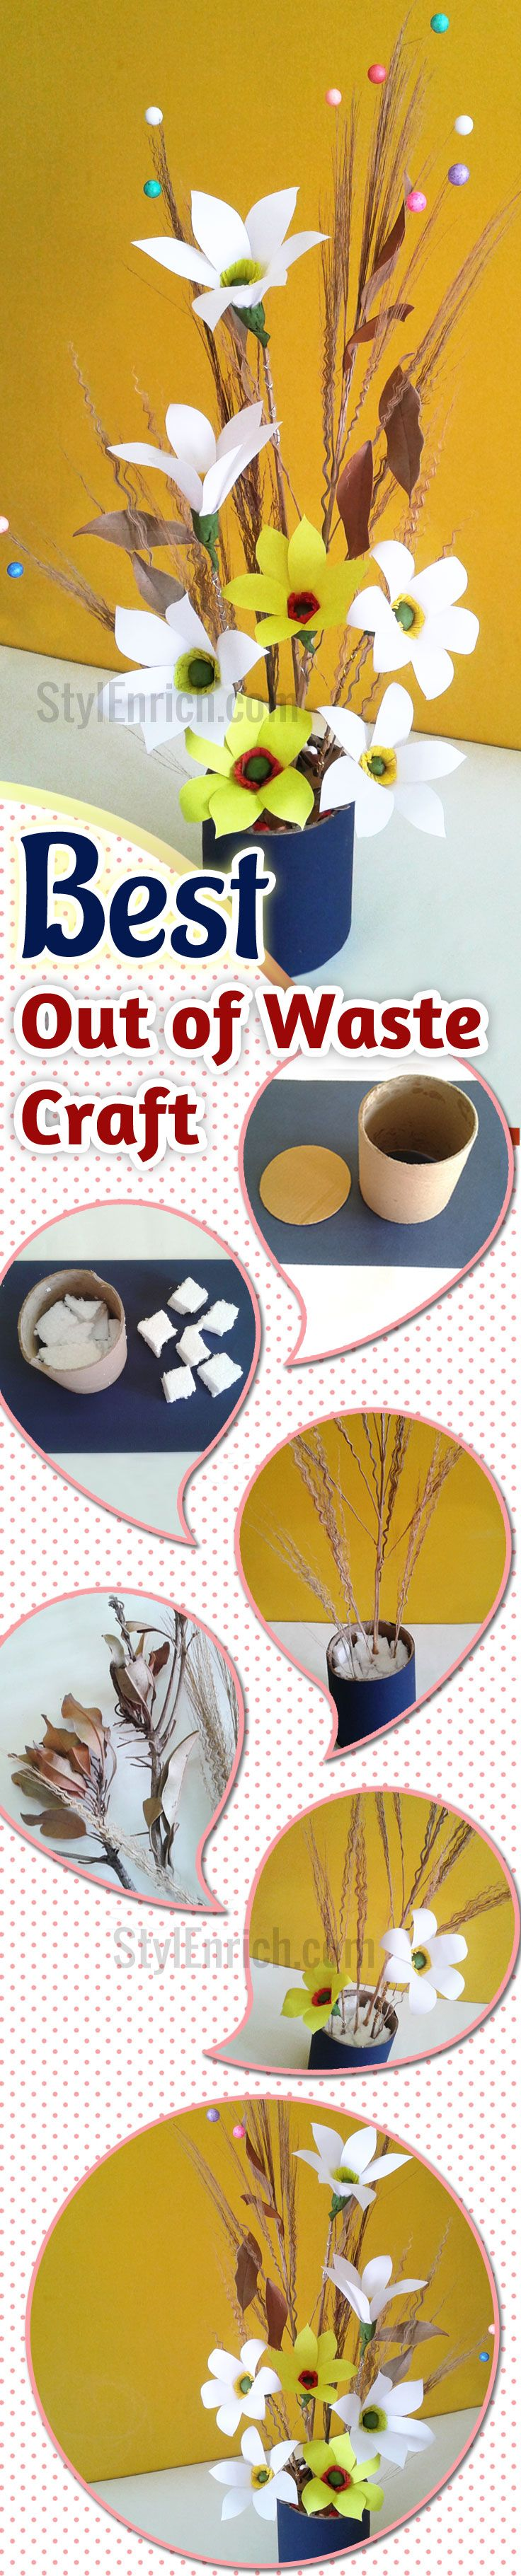 49 best images about best out of waste on pinterest